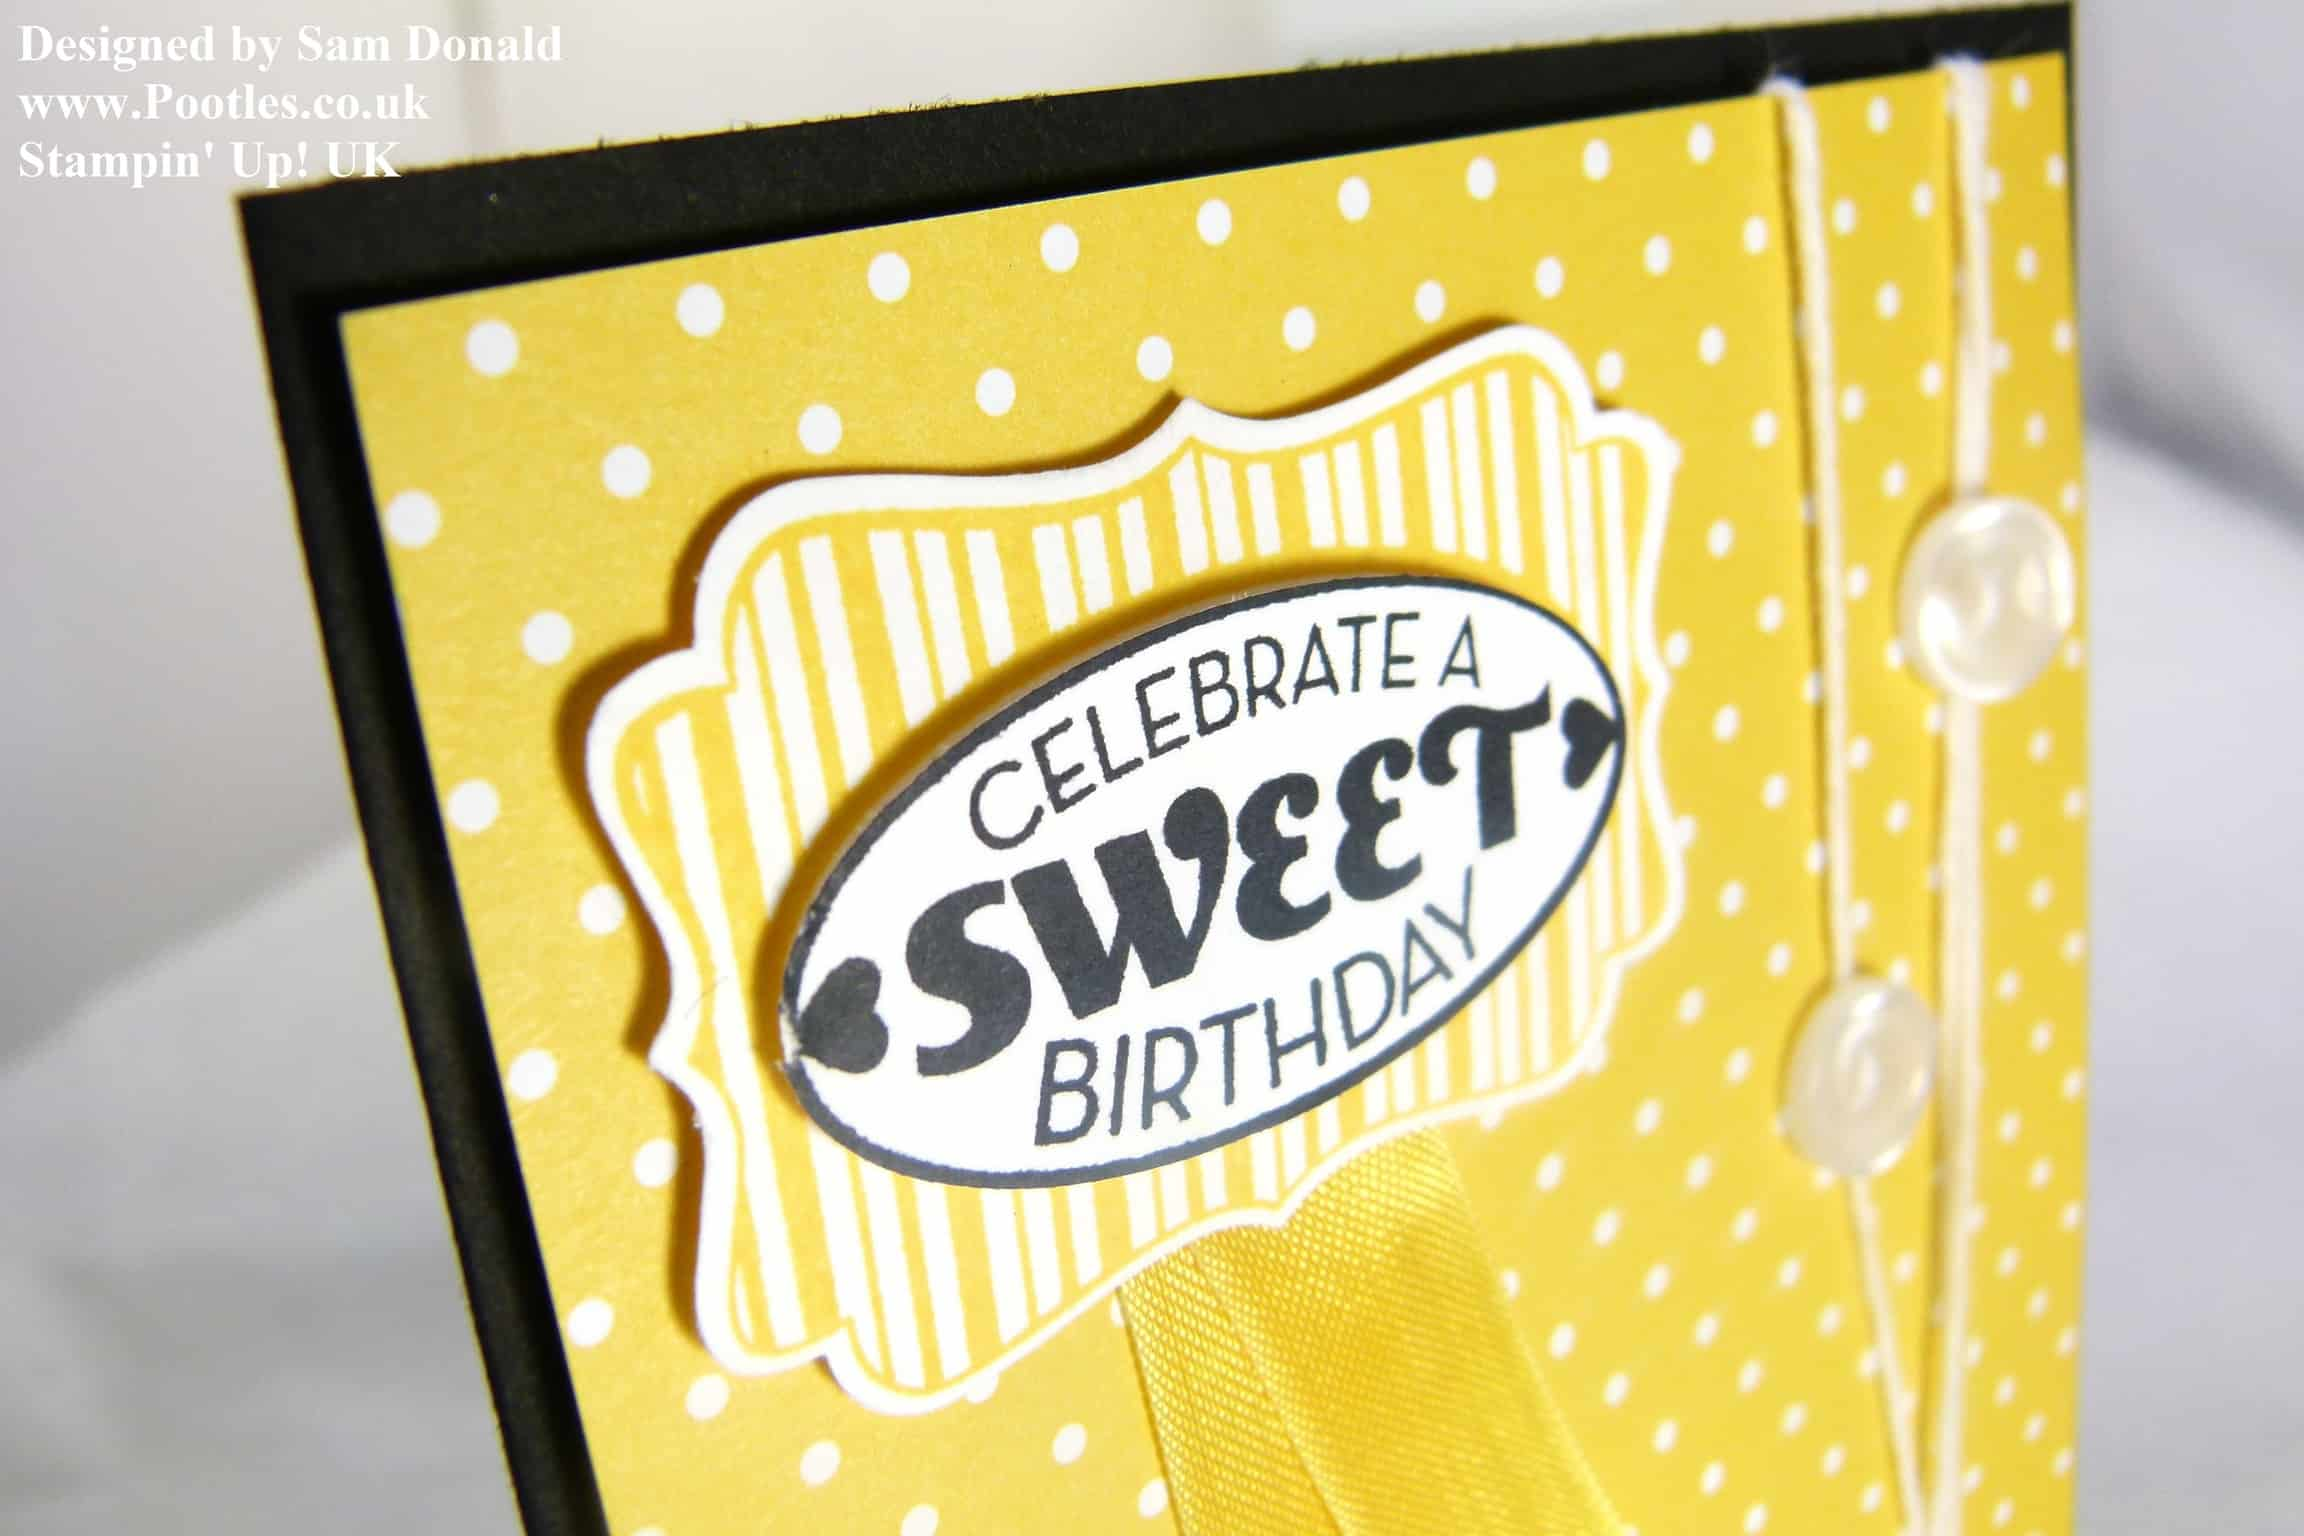 Pootles Stampin Up UK Jacobs Cycle Celebration Birthday Card